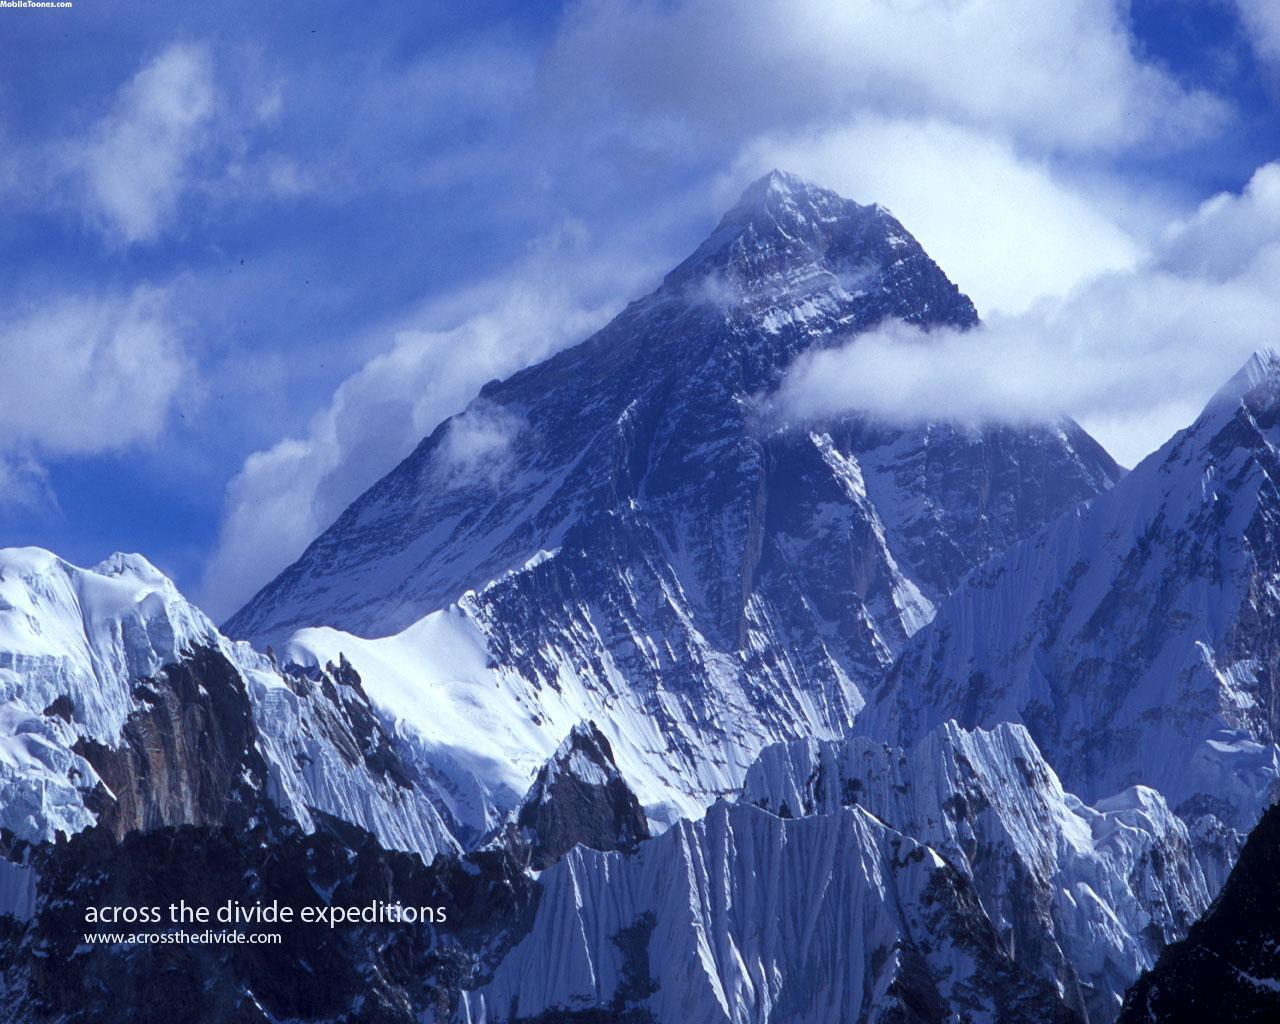 Mount Everest Wallpaper High Quality Wallpapers Photos | World Travel